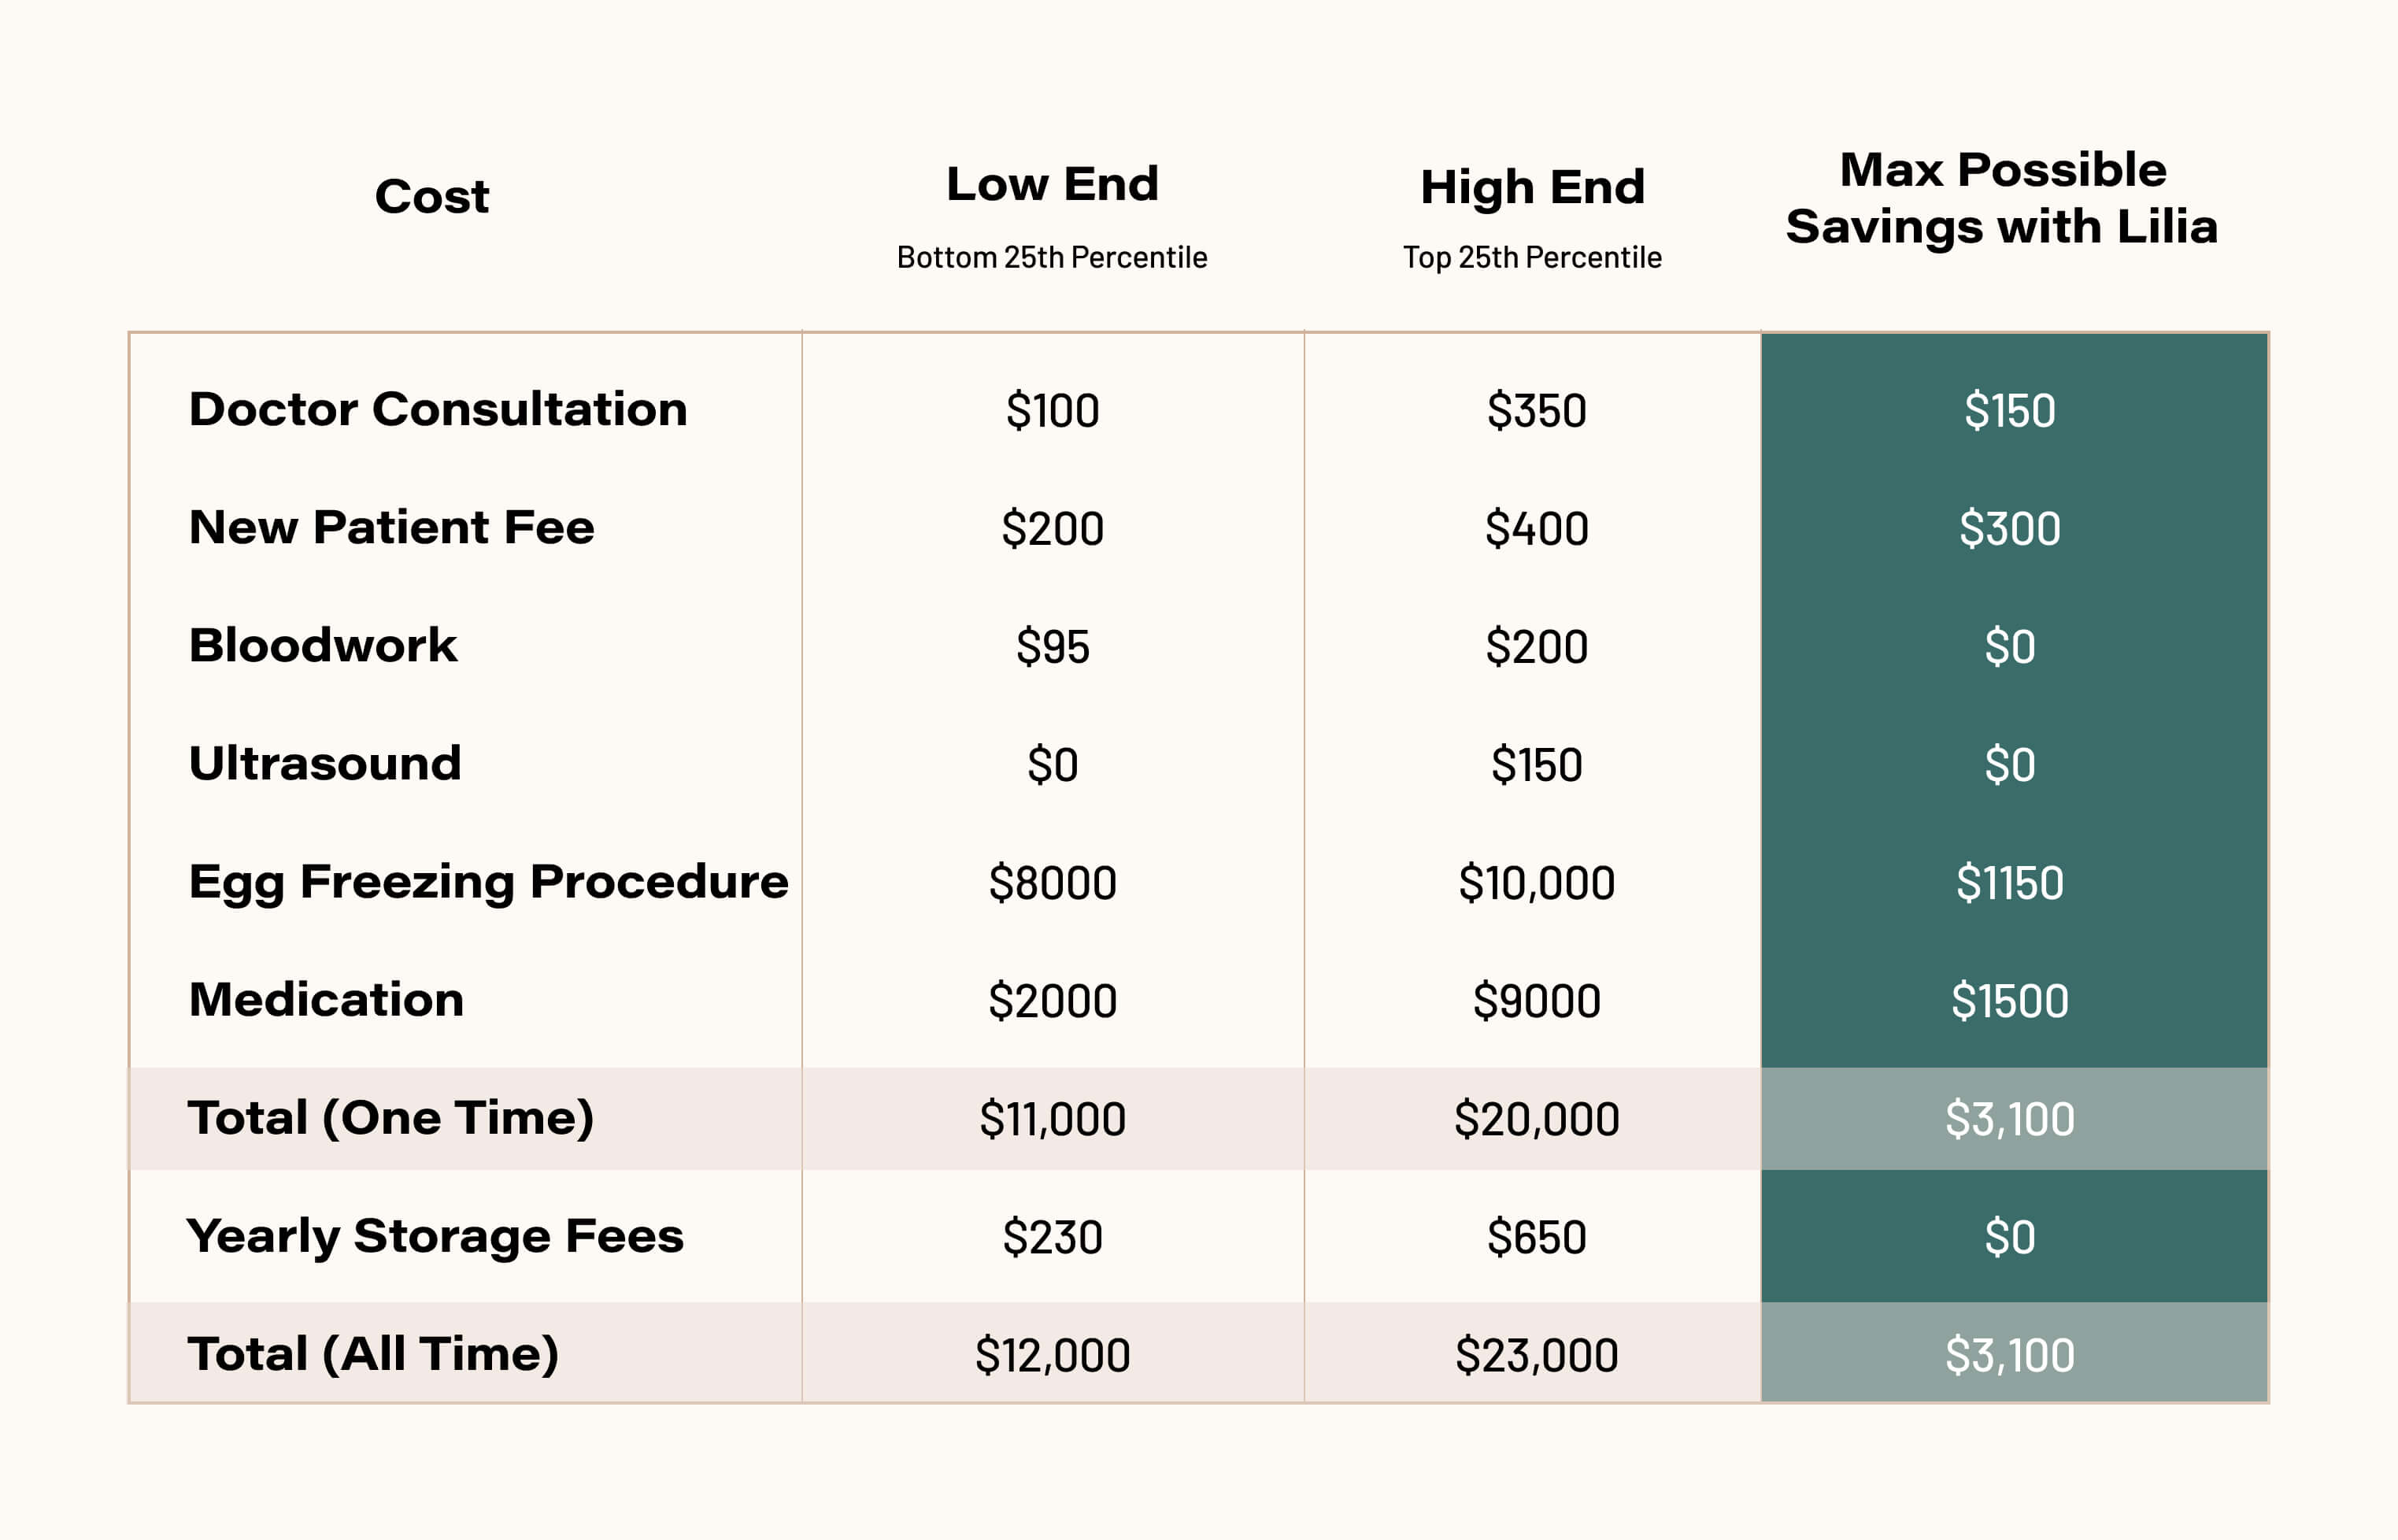 Summarized Costs Table